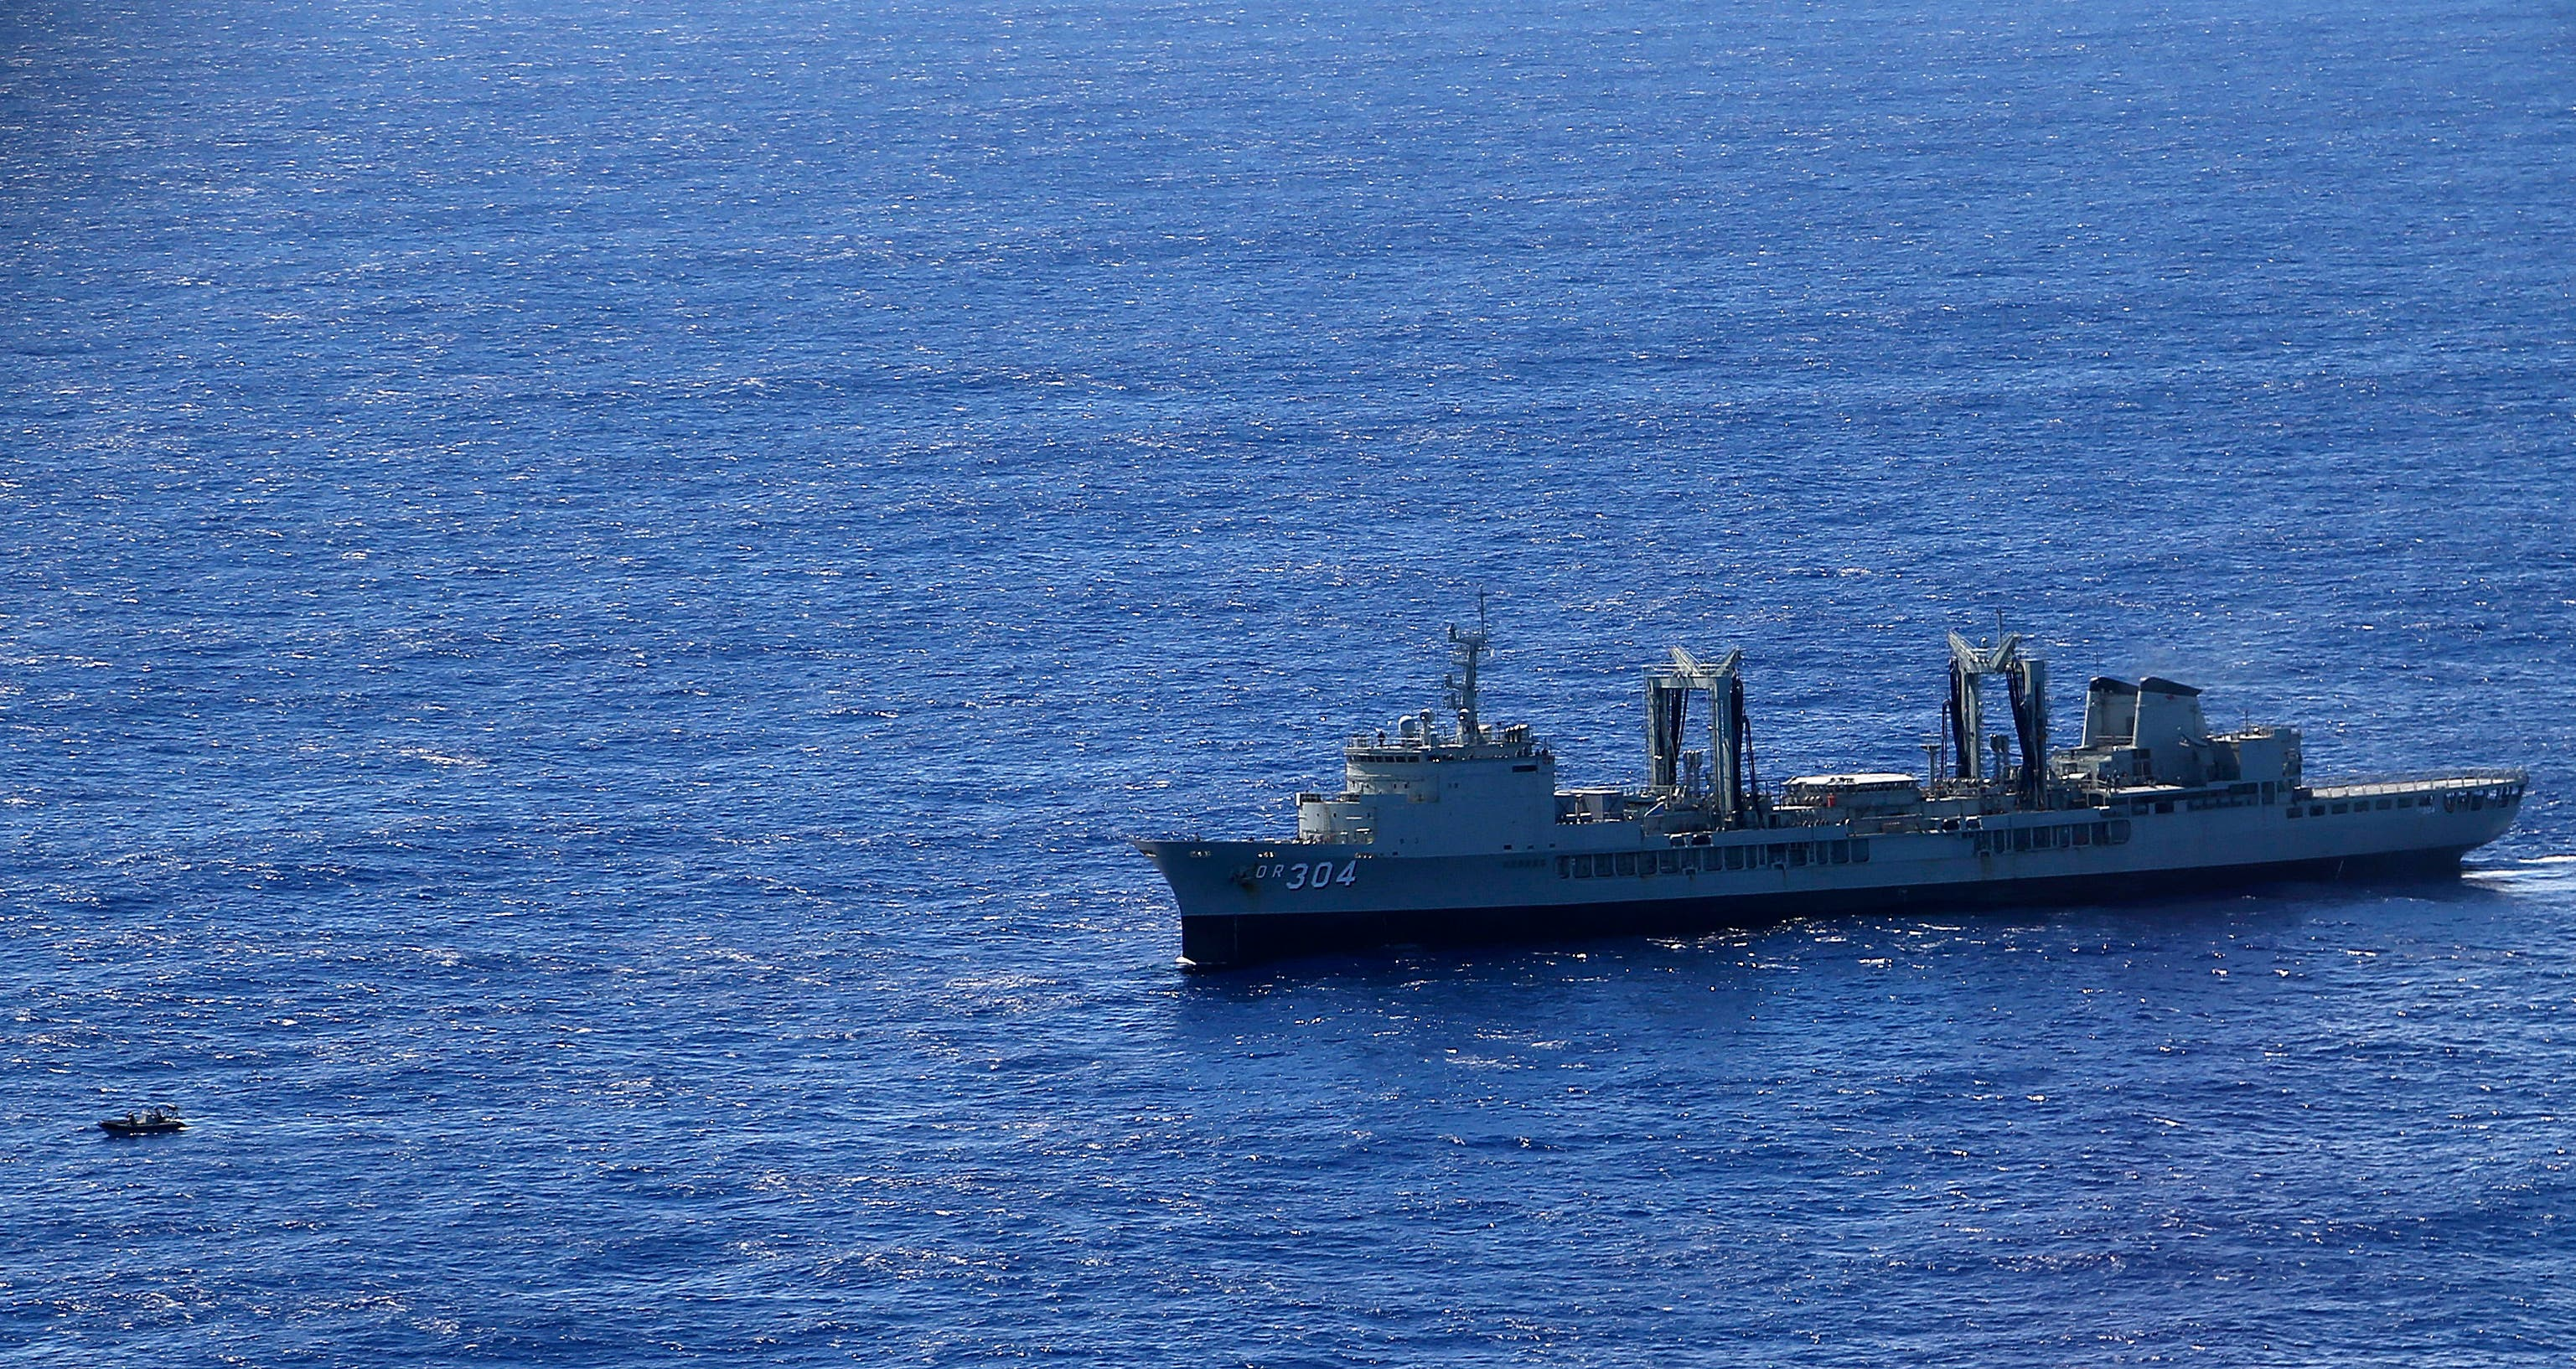 Australia navy ship. (File photo: Reuters)